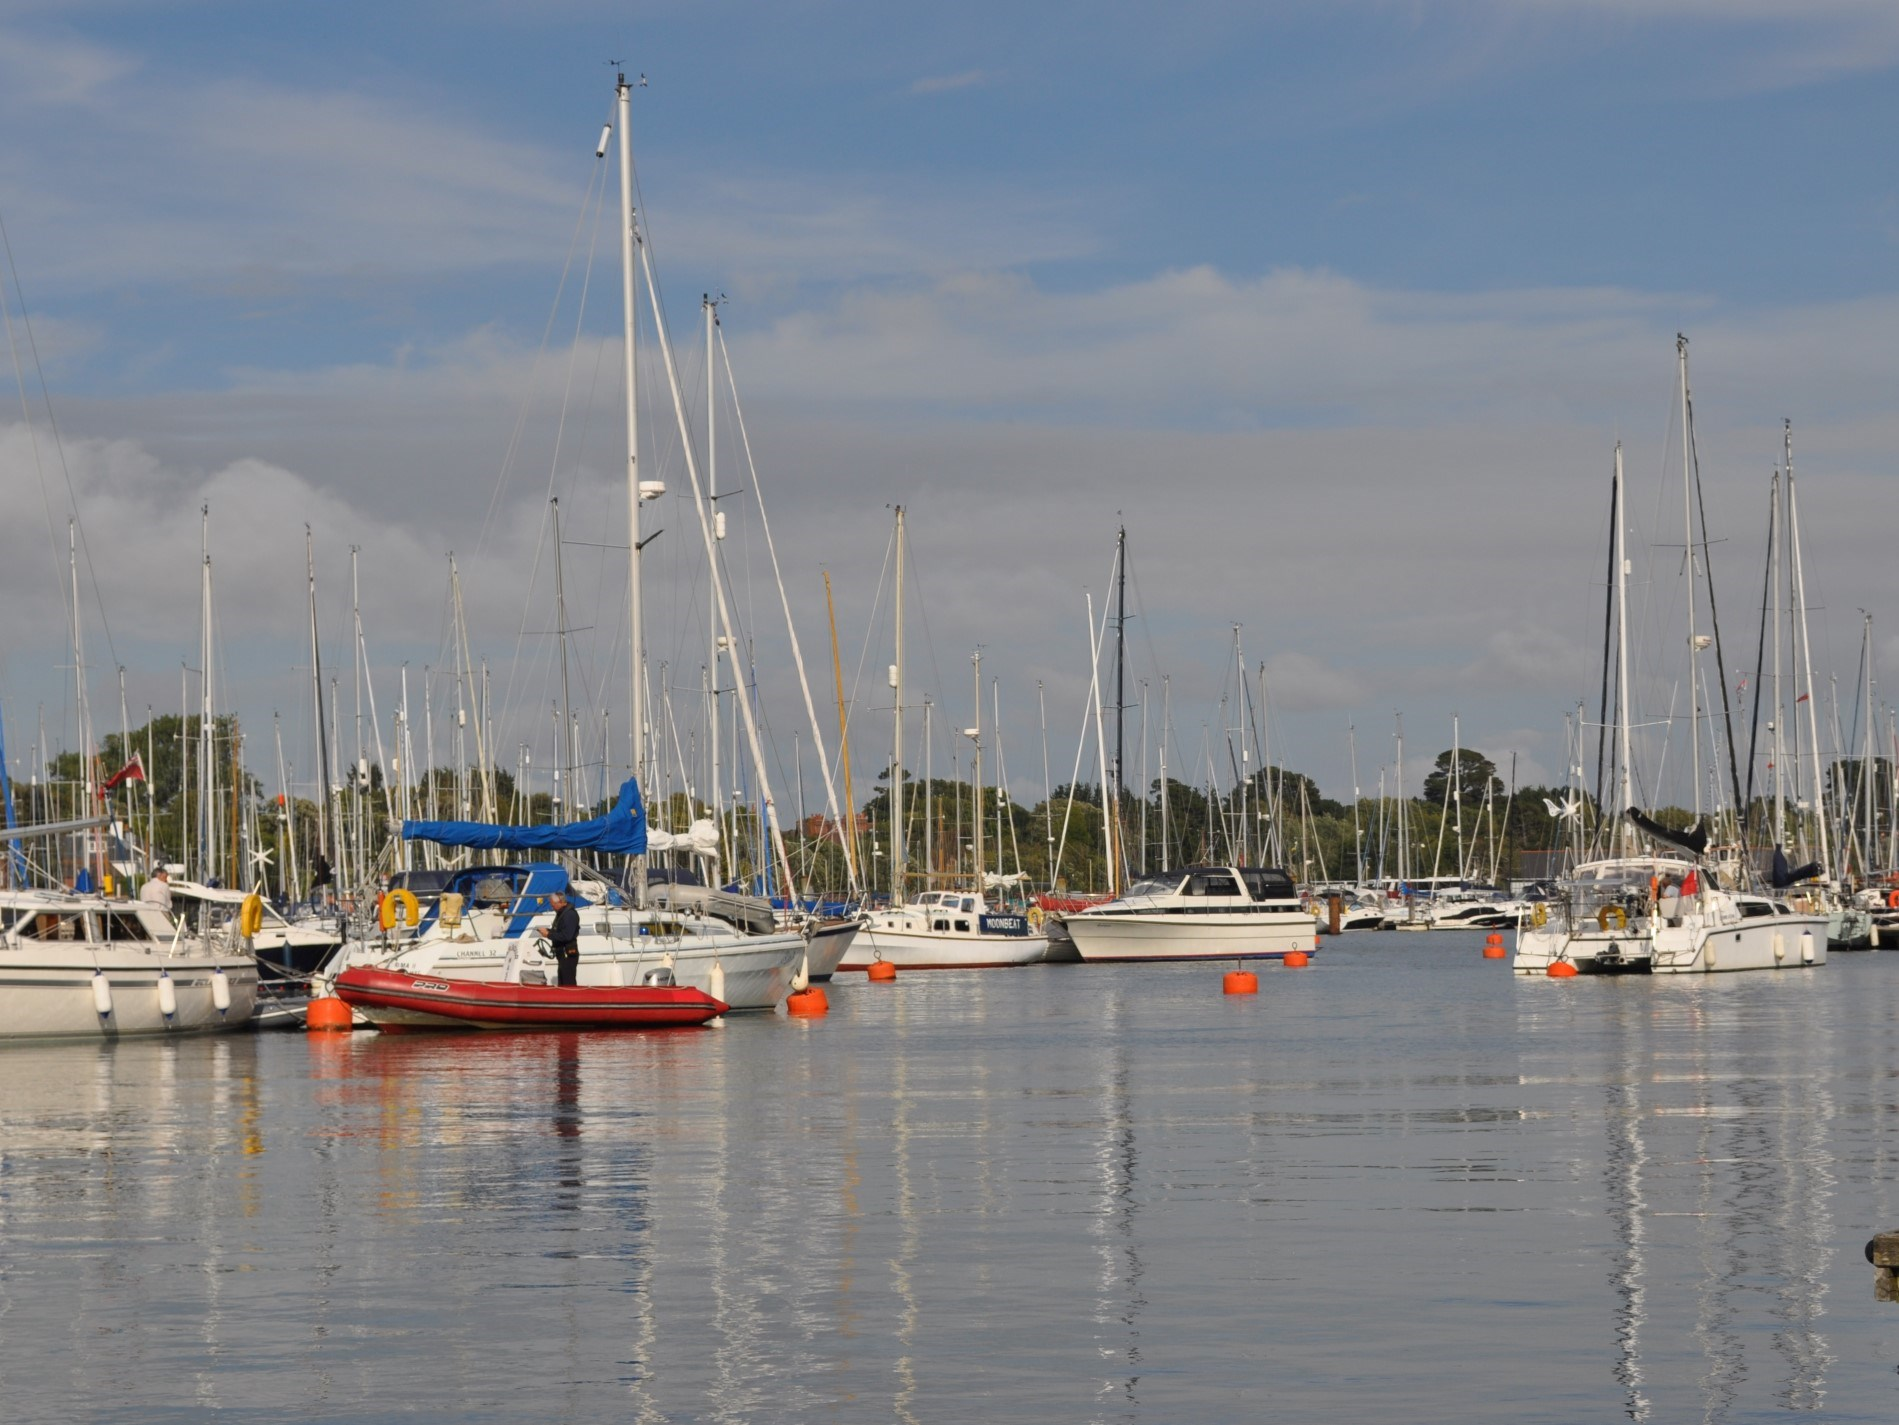 Views from Lymington Quay